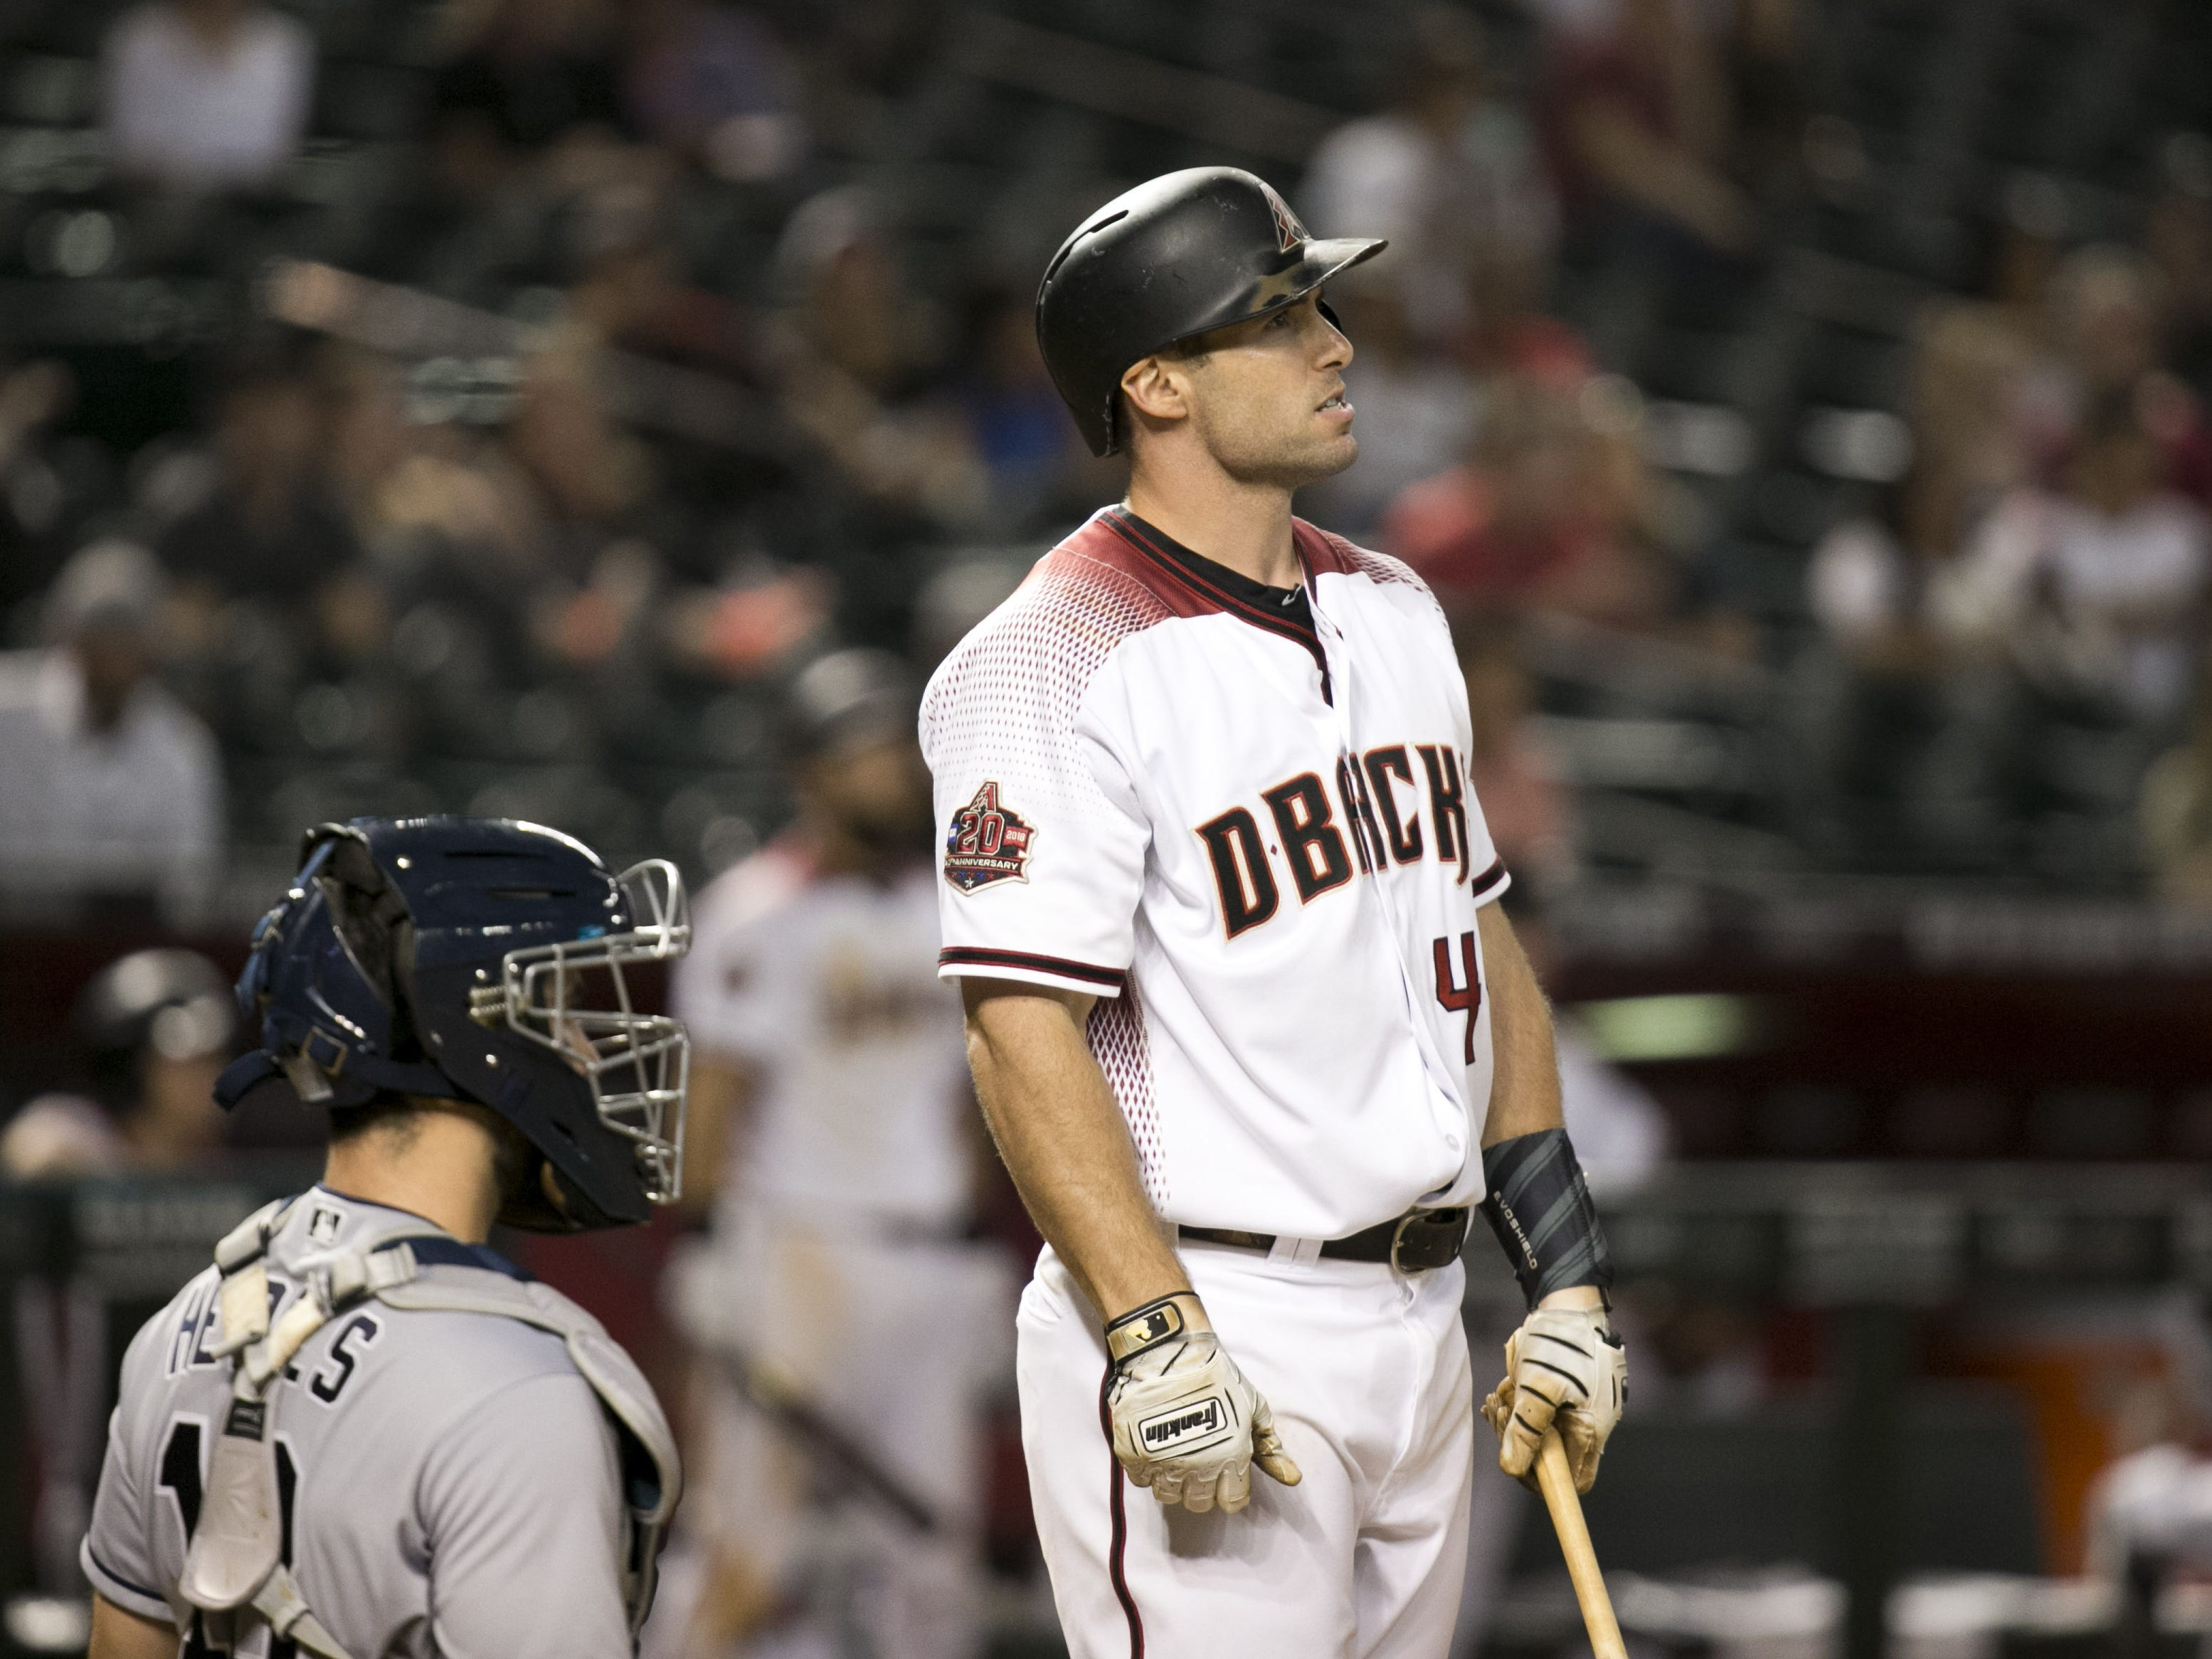 Diamondbacks first baseman Paul Goldschmidt  looks on during his at bat in the eighth inning against the Padres of the major league baseball game at Chase Field in Phoenix on Monday, September 3, 2018.